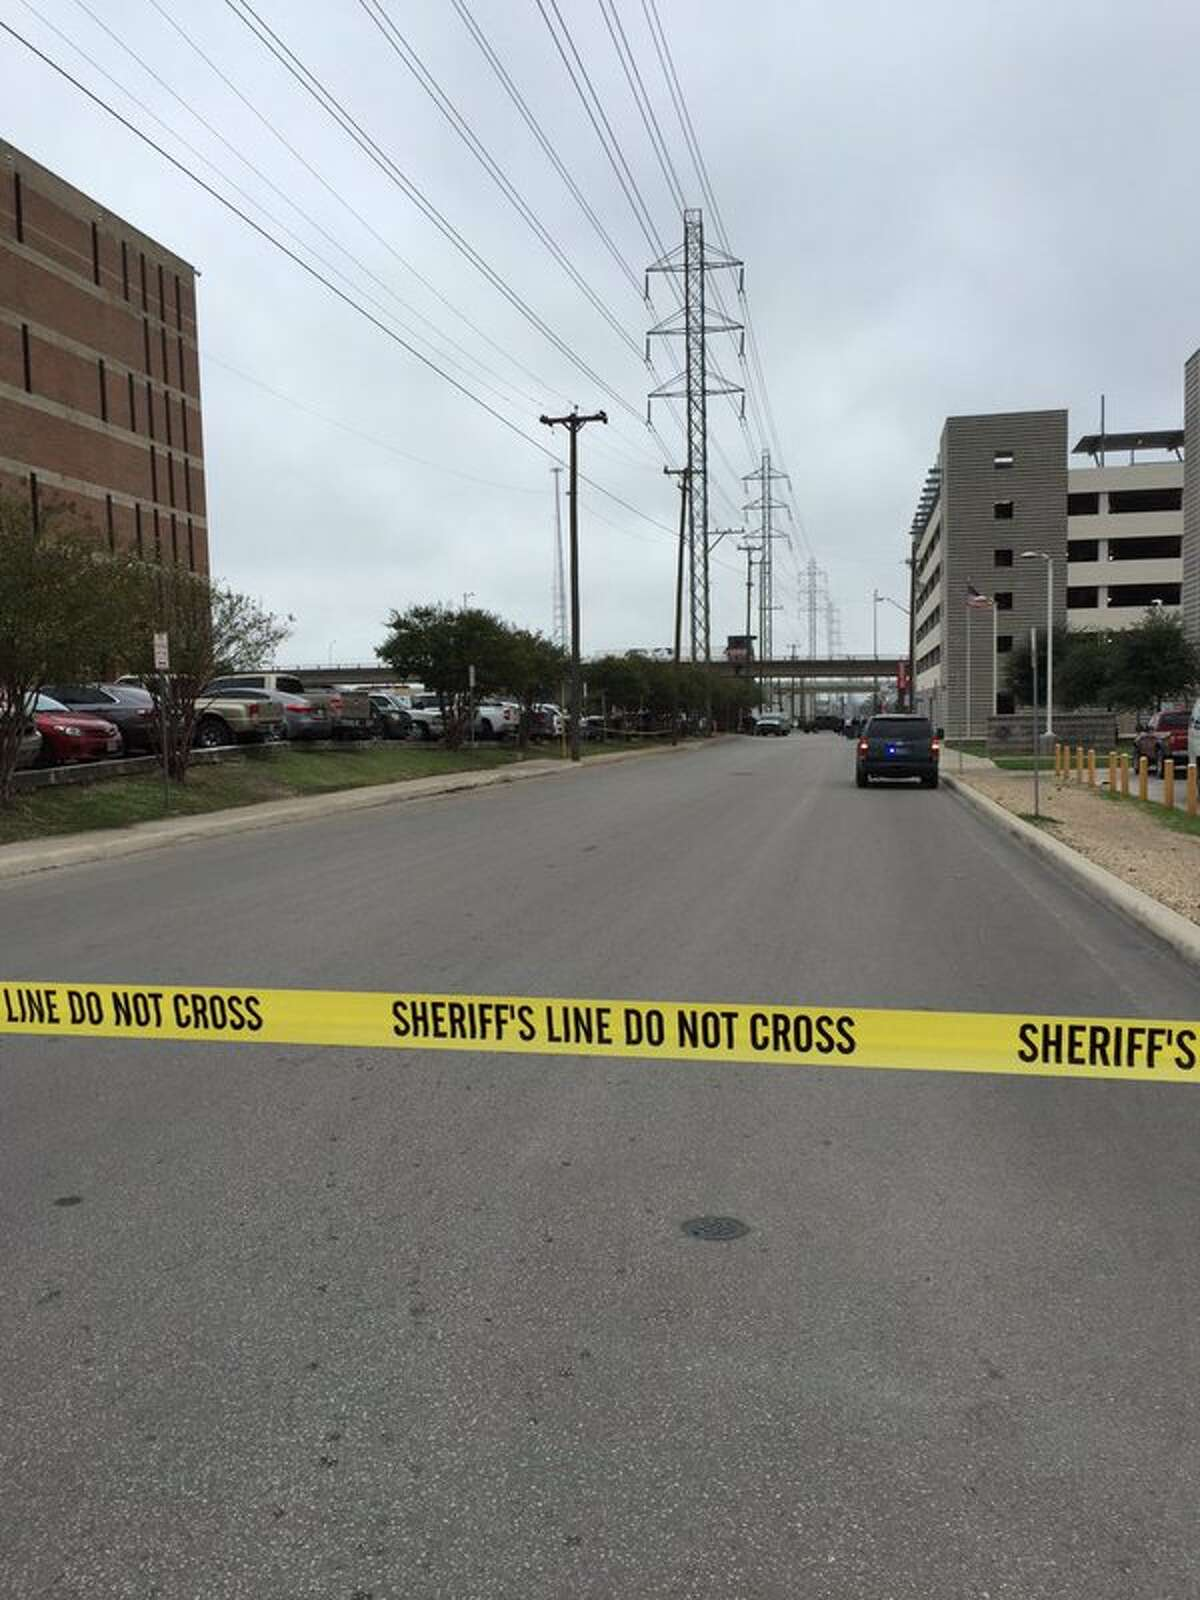 Authorities have closed Comal Street in front of the Bexar County Jail following the discovery of a suspicious package on Nov. 16, 2015.